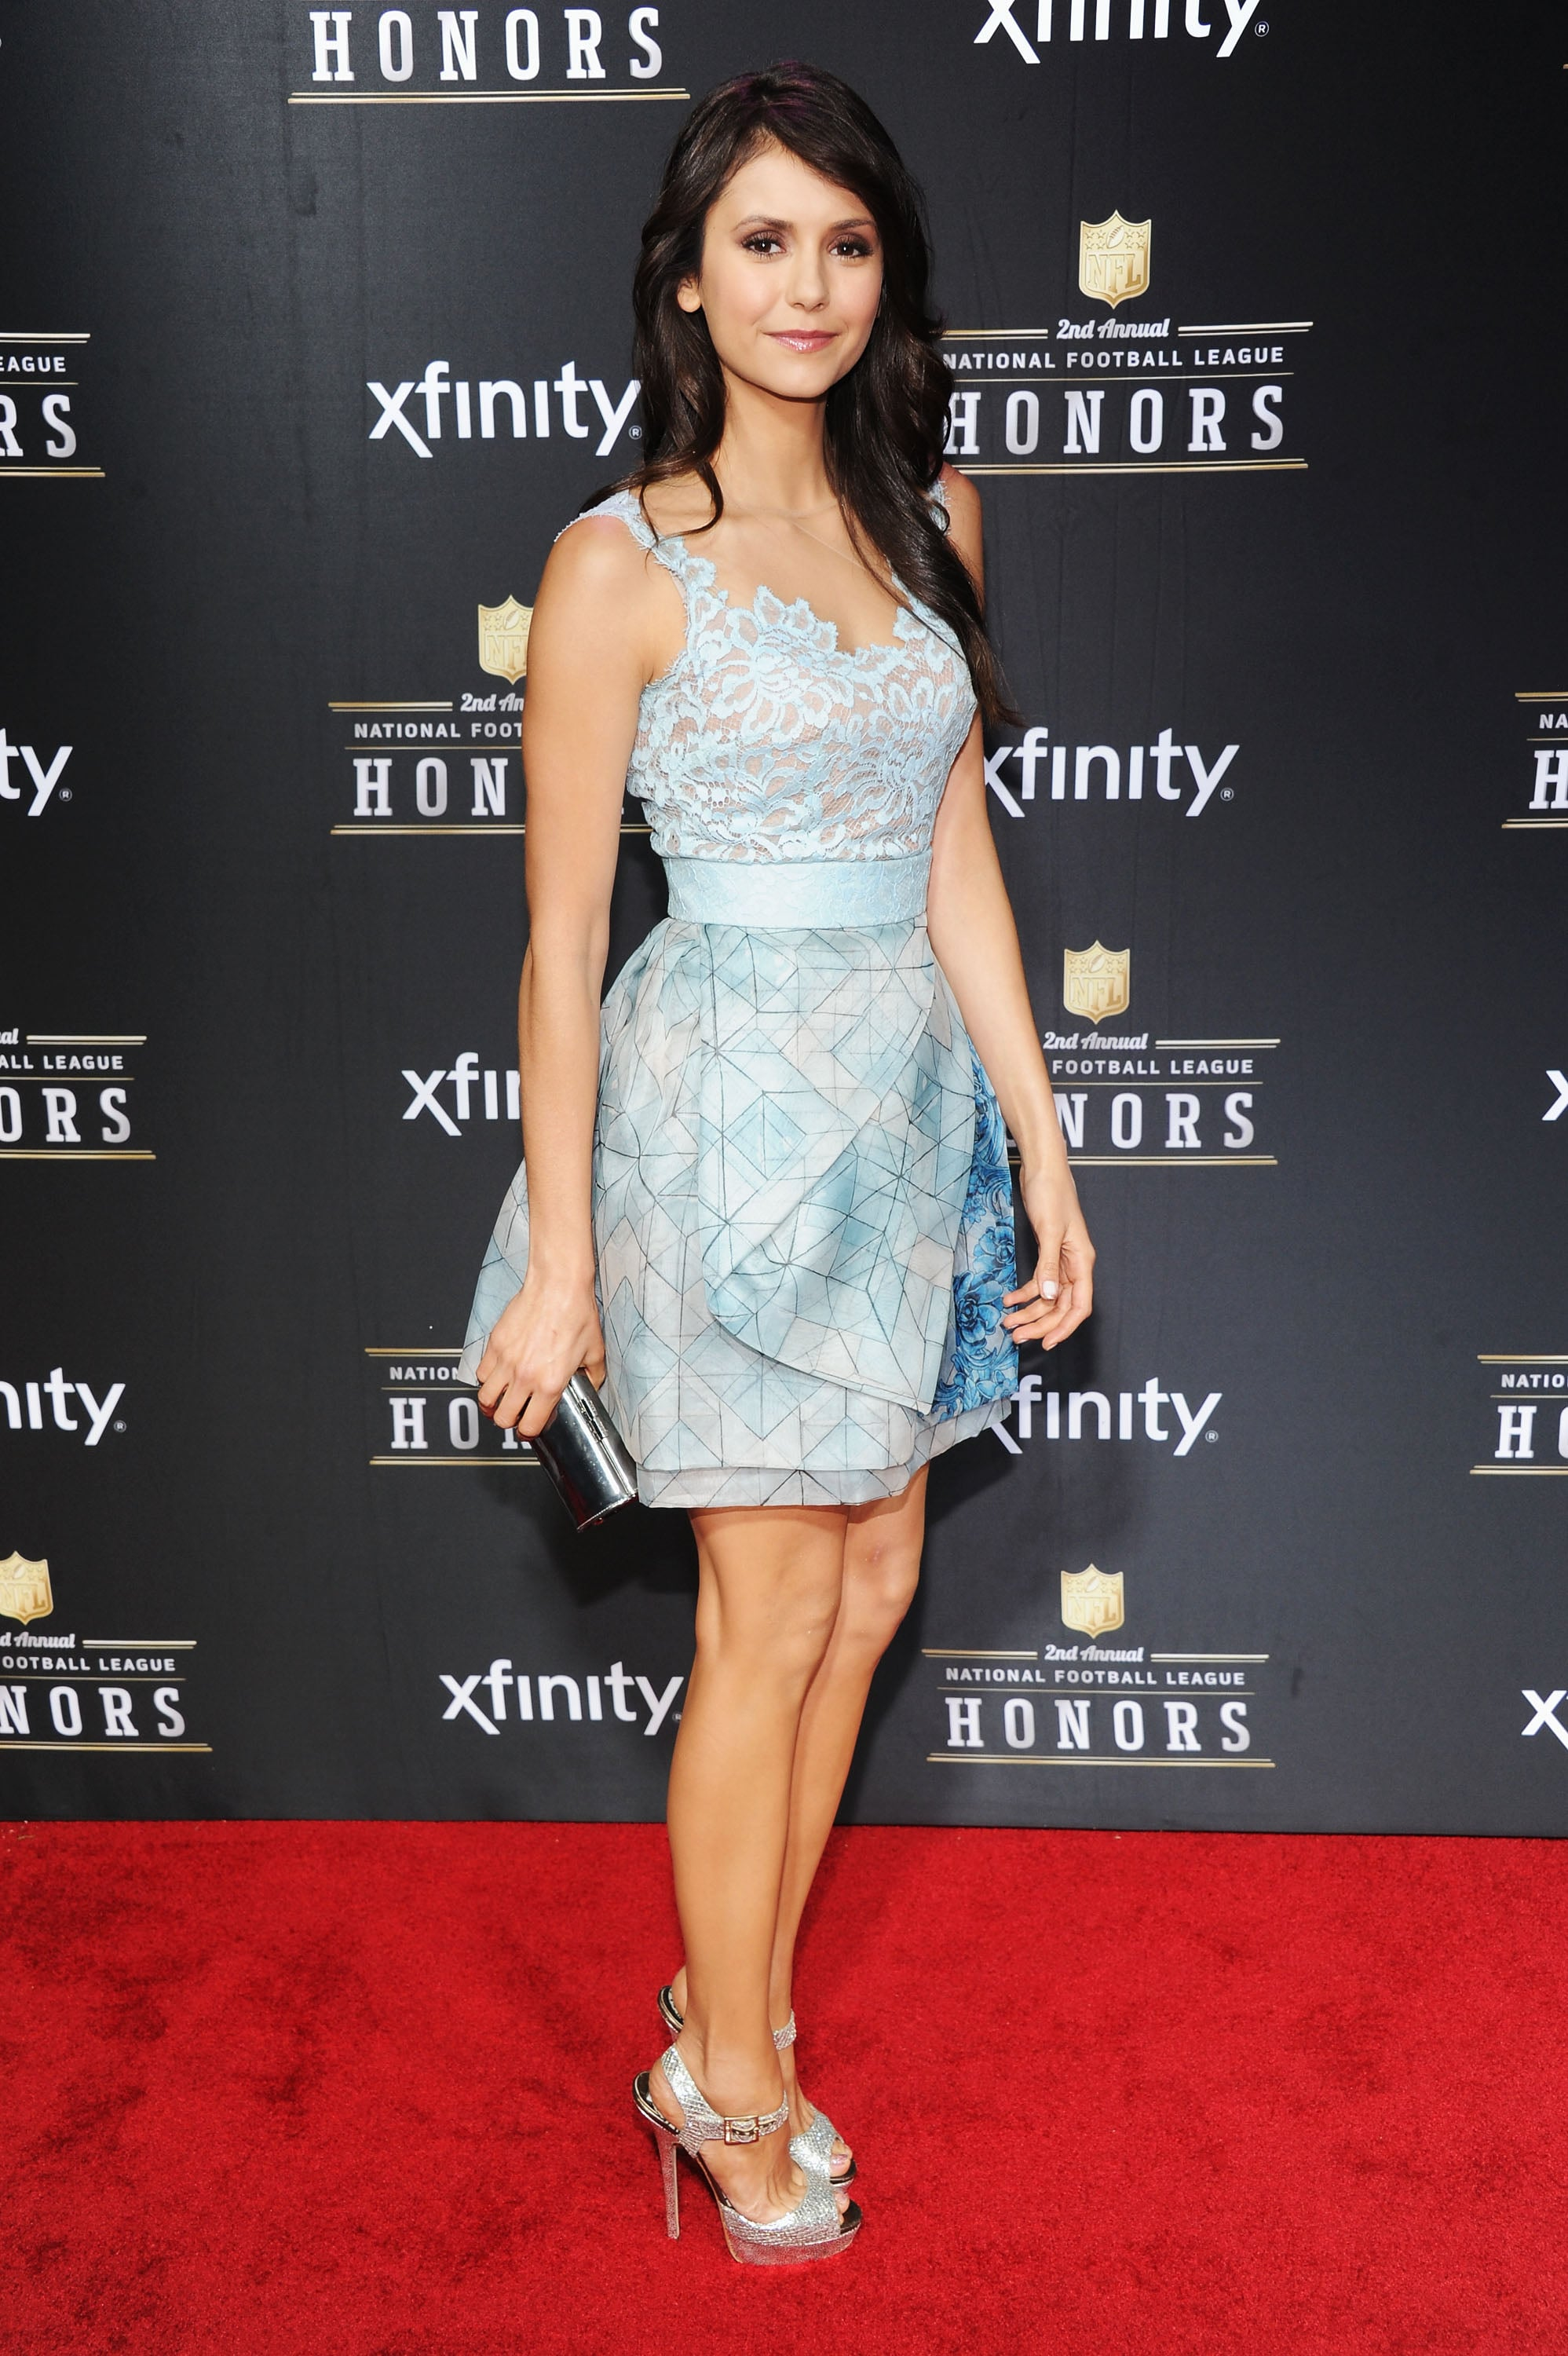 Nina Dobrev, who played in DirecTV's celebrity beach bowl earlier in the day, chose a sweet light-blue Zuhair Murad mini and silver Jimmy Choo sandals for the NFL Honors event. But The Vampire Diaries star's dress was anything but simple: her lacy floral top and geometric-print A-line skirt proved doubly dynamic.